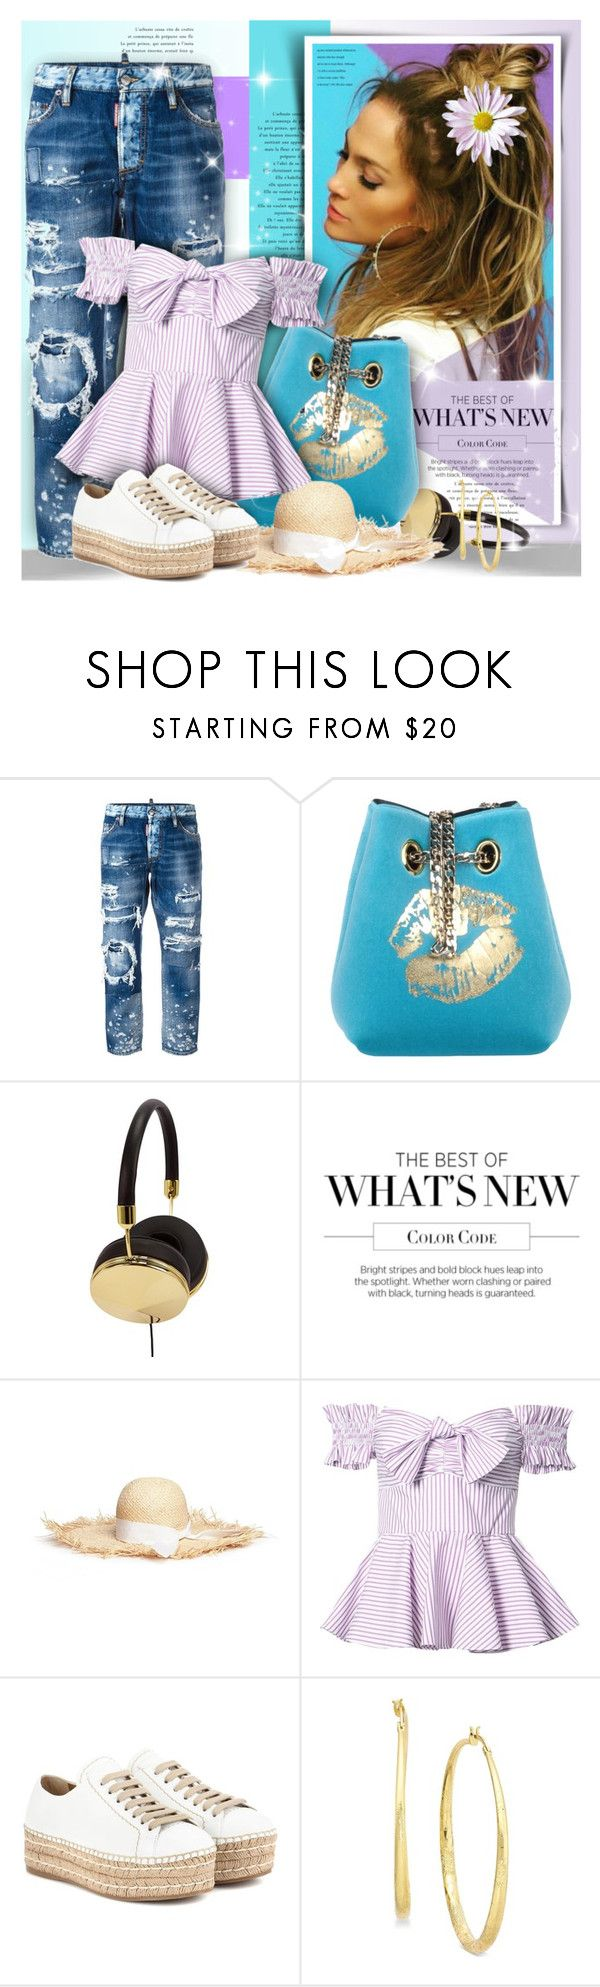 """Sweet Summer"" by petri5 ❤ liked on Polyvore featuring Dsquared2, La Fille Des Fleurs, Frends, Gigi Burris Millinery, Caroline Constas, Prada and Thalia Sodi"